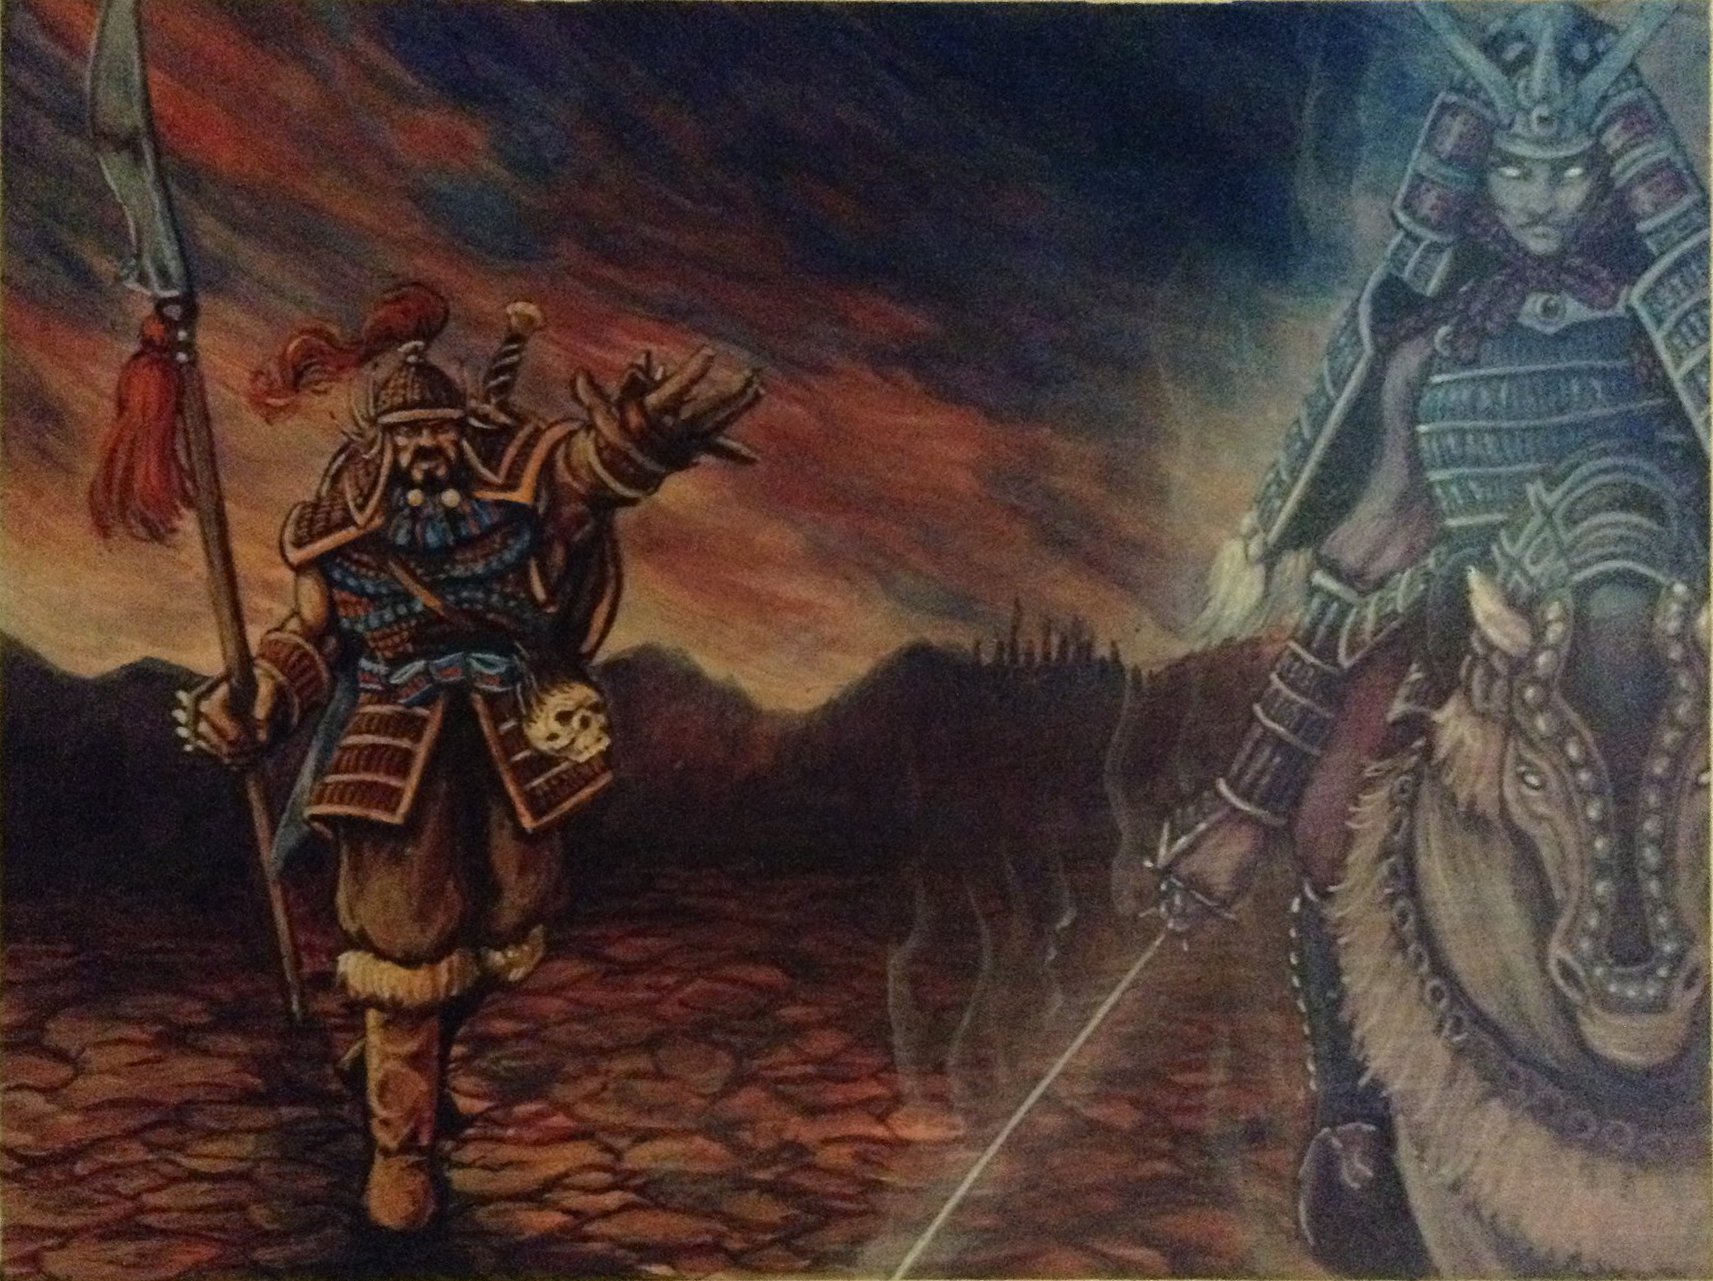 File:Gaheris and Shinjo meet at the Black Earth.jpg